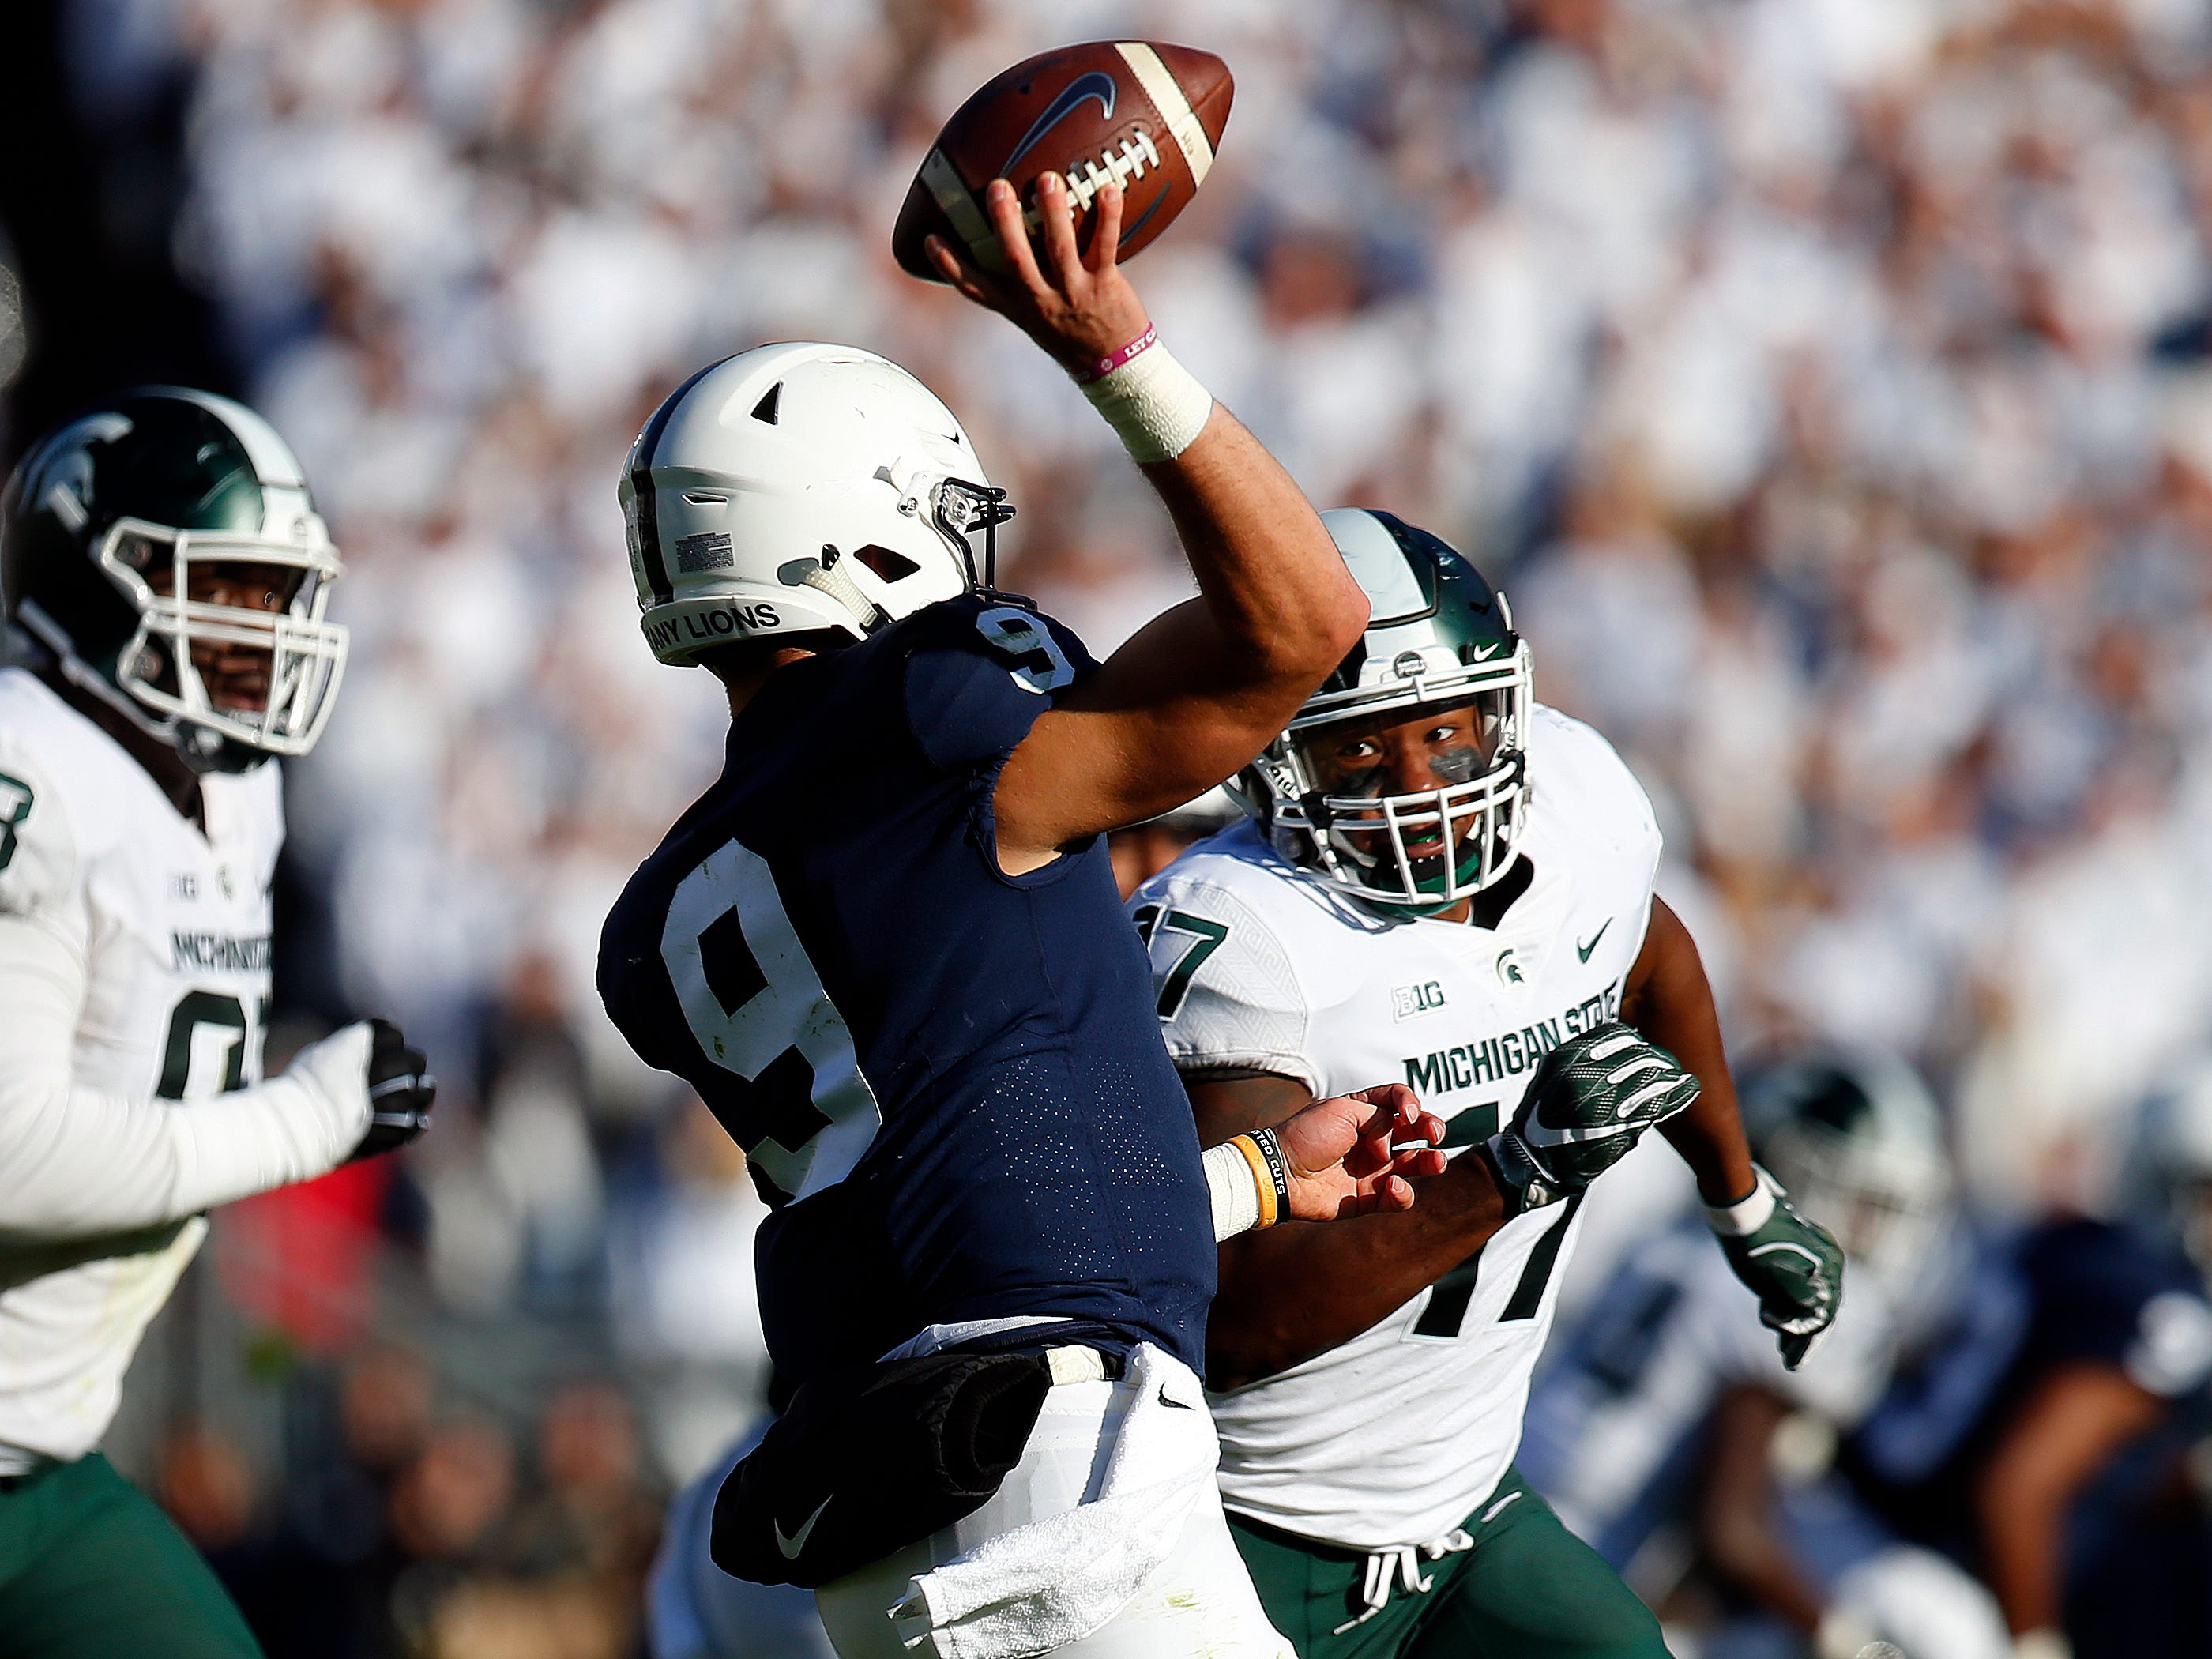 Penn State quarterback Trace McSorley  is pressured by Tyriq Thompson.